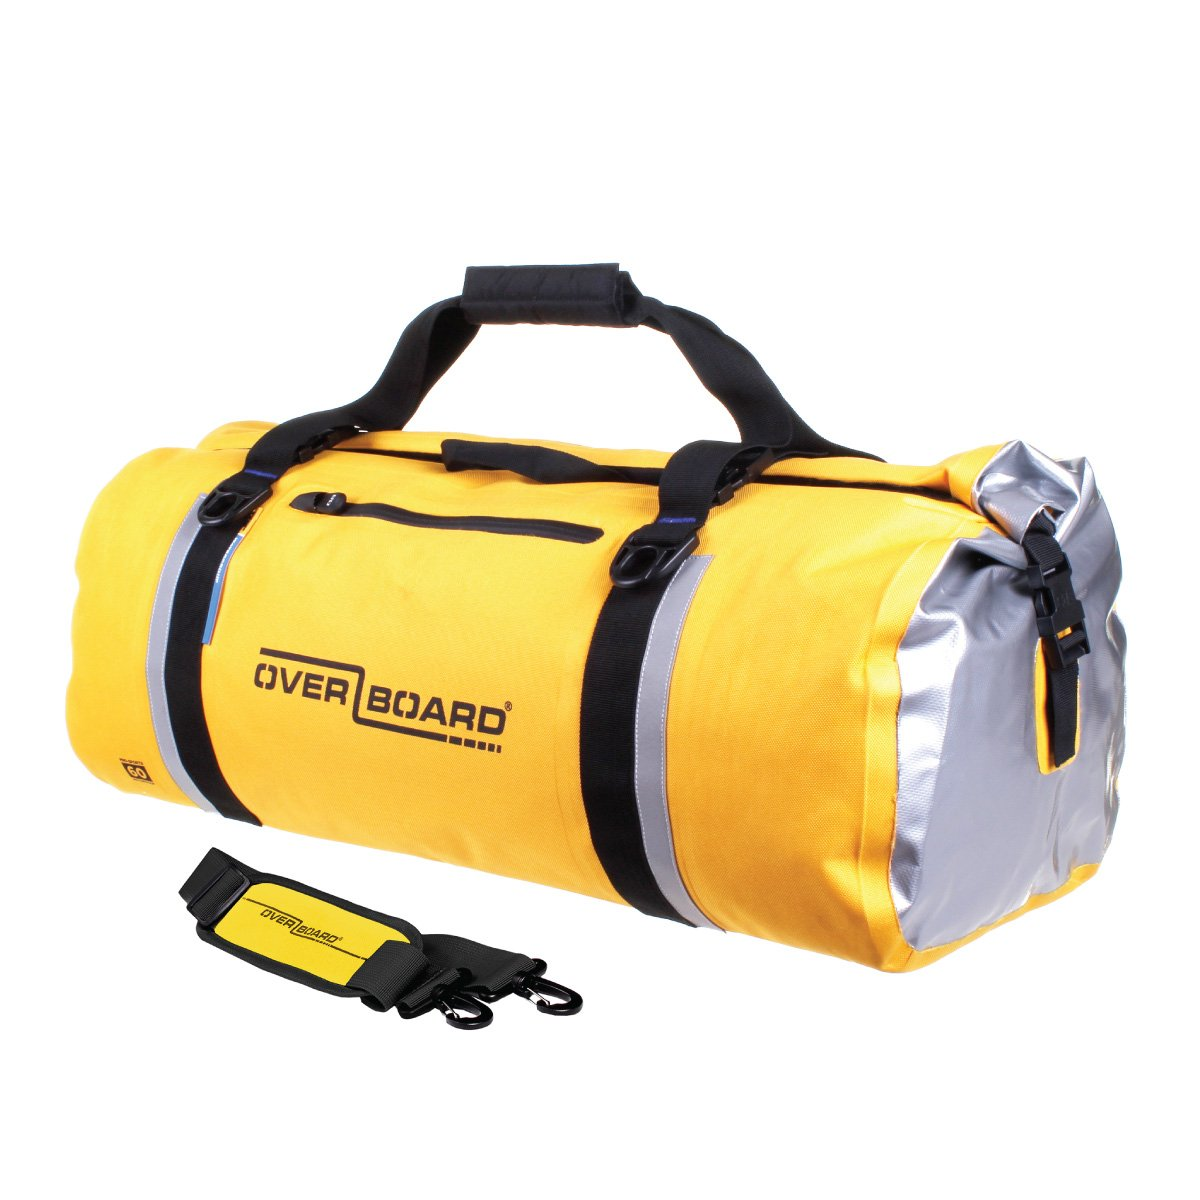 Overboard OB1151Y Classic Waterproof Mochila Impermeable - 60 Ltr - Amarillo